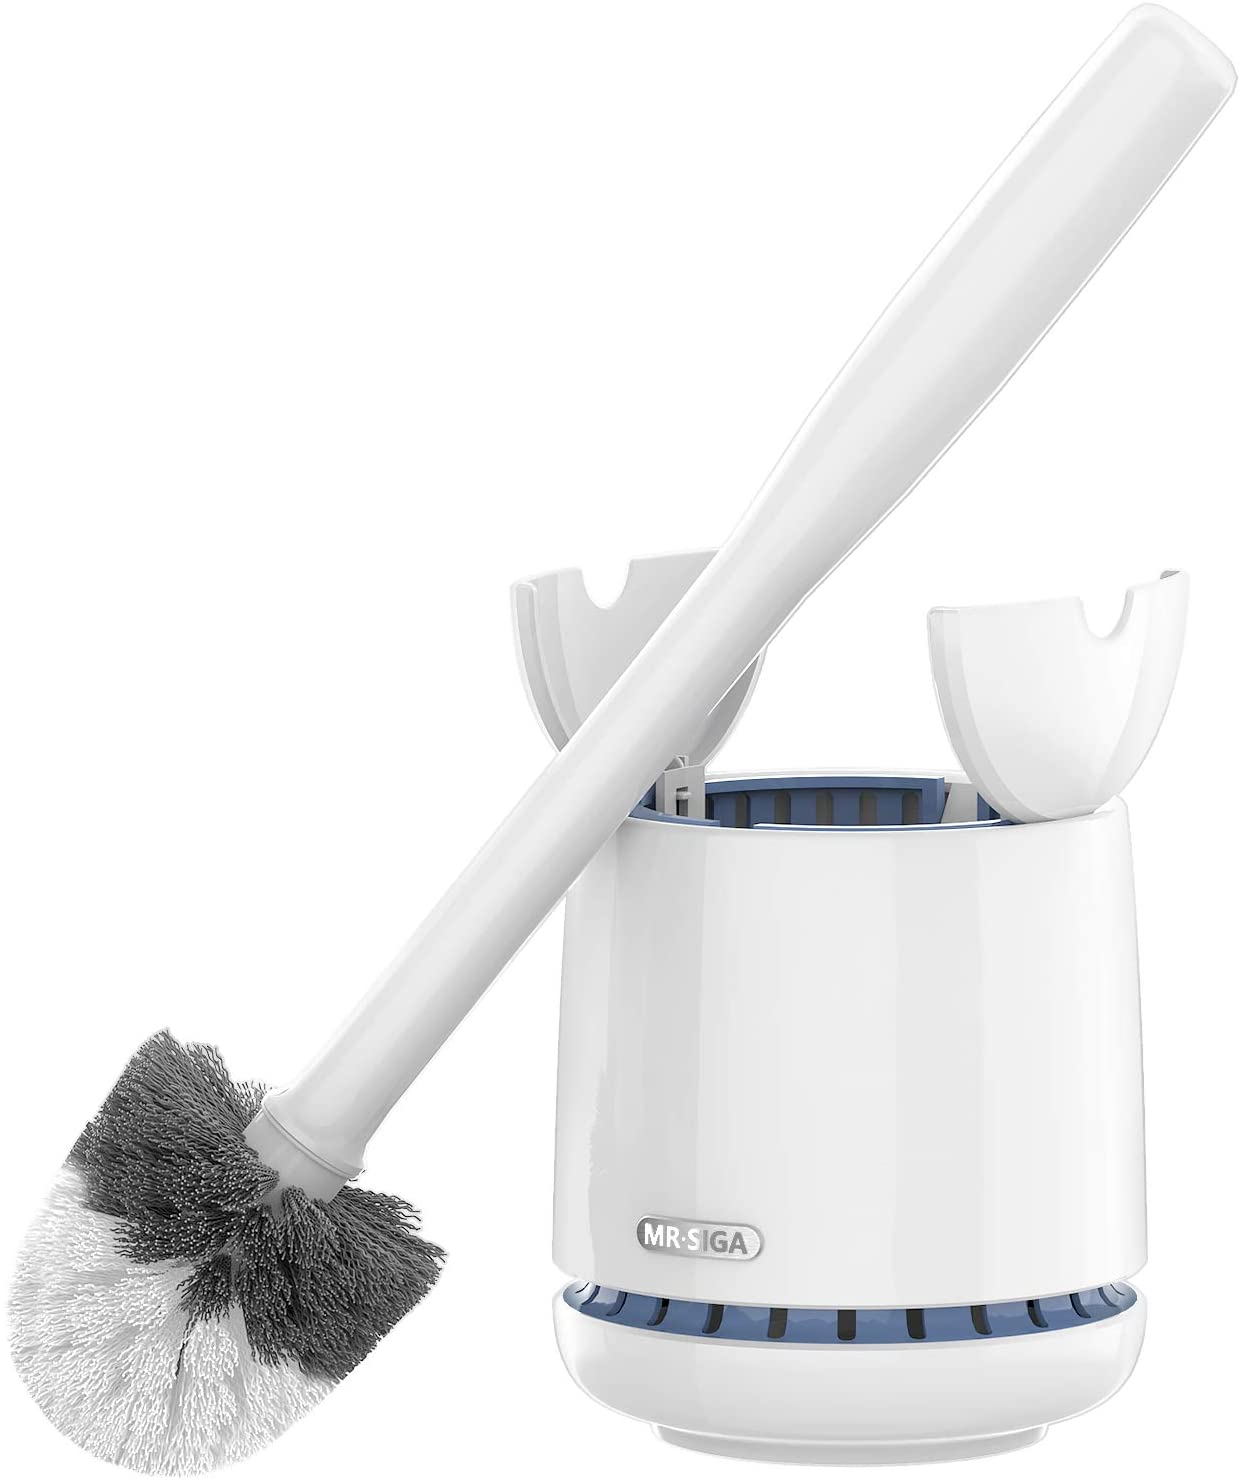 MR.SIGA Toilet Bowl Brush and Holder, Premium Quality, with Solid Handle and Durable Bristles for Bathroom Cleaning, White, 1 Pack: Kitchen & Dining